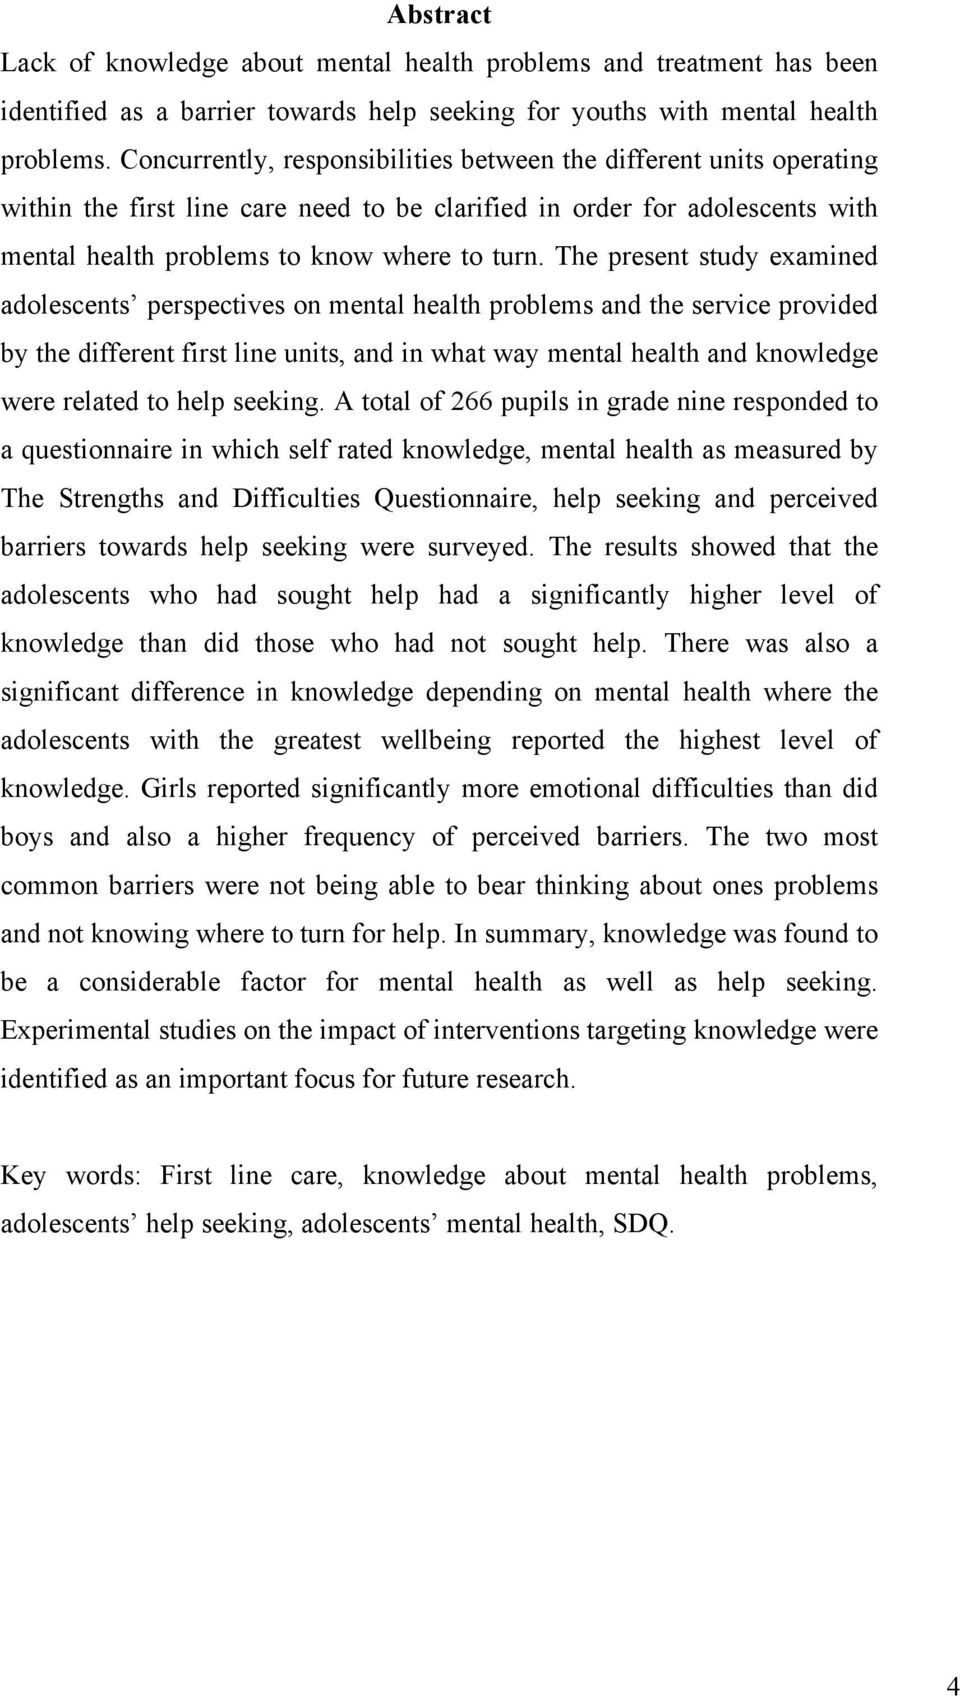 The present study examined adolescents perspectives on mental health problems and the service provided by the different first line units, and in what way mental health and knowledge were related to